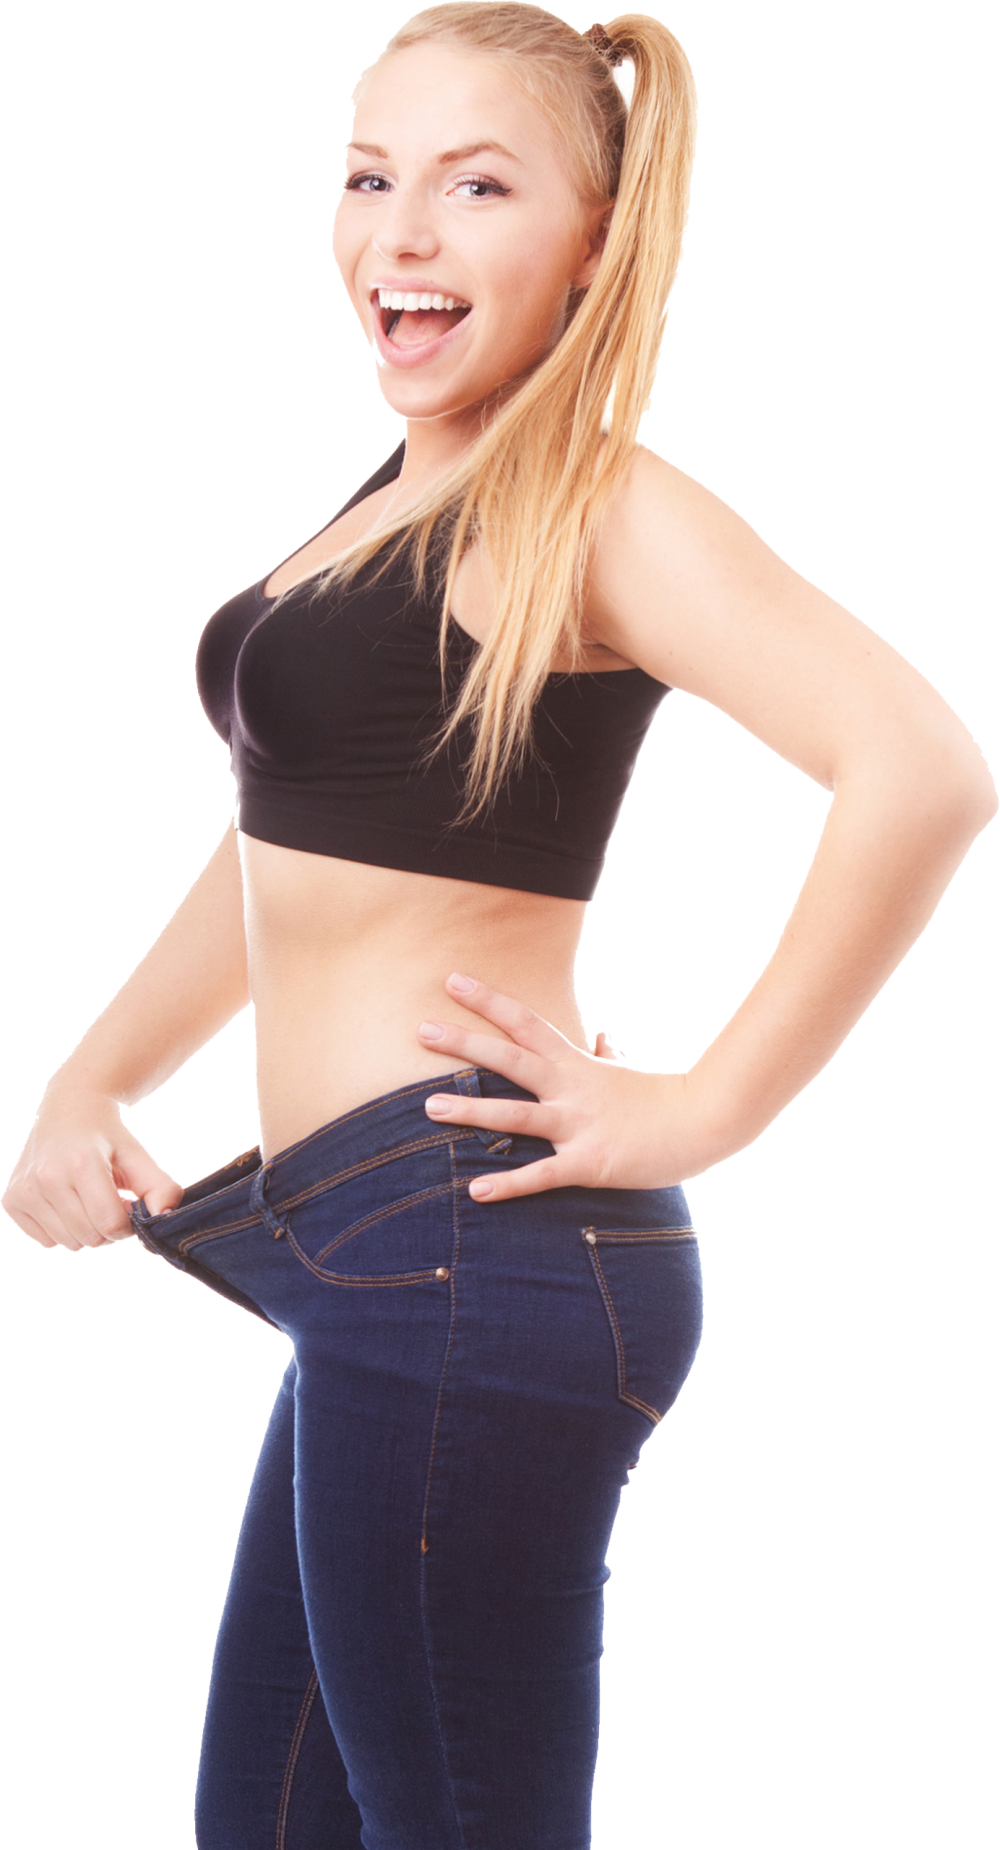 Weight Loss Free Download Png Brandywine Area Nutrition